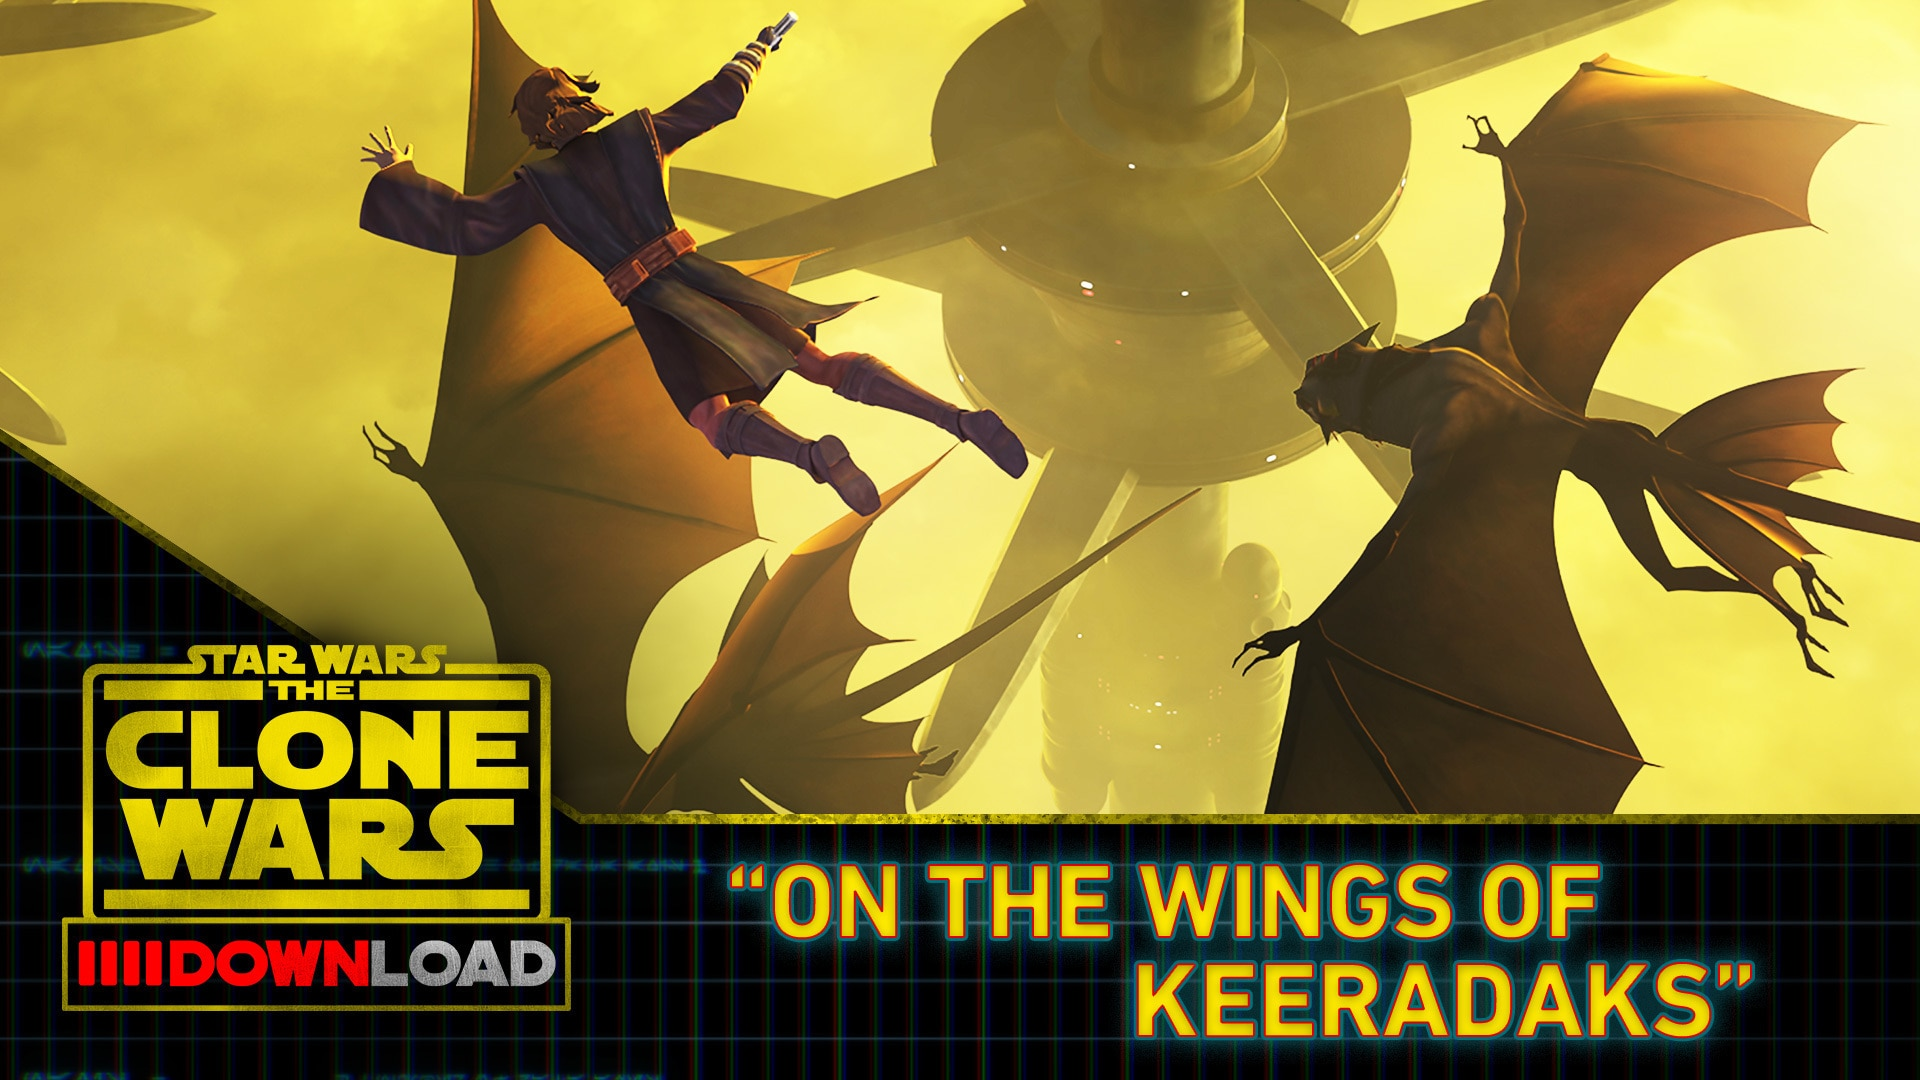 Clone Wars Download: On the Wings of Keeradaks